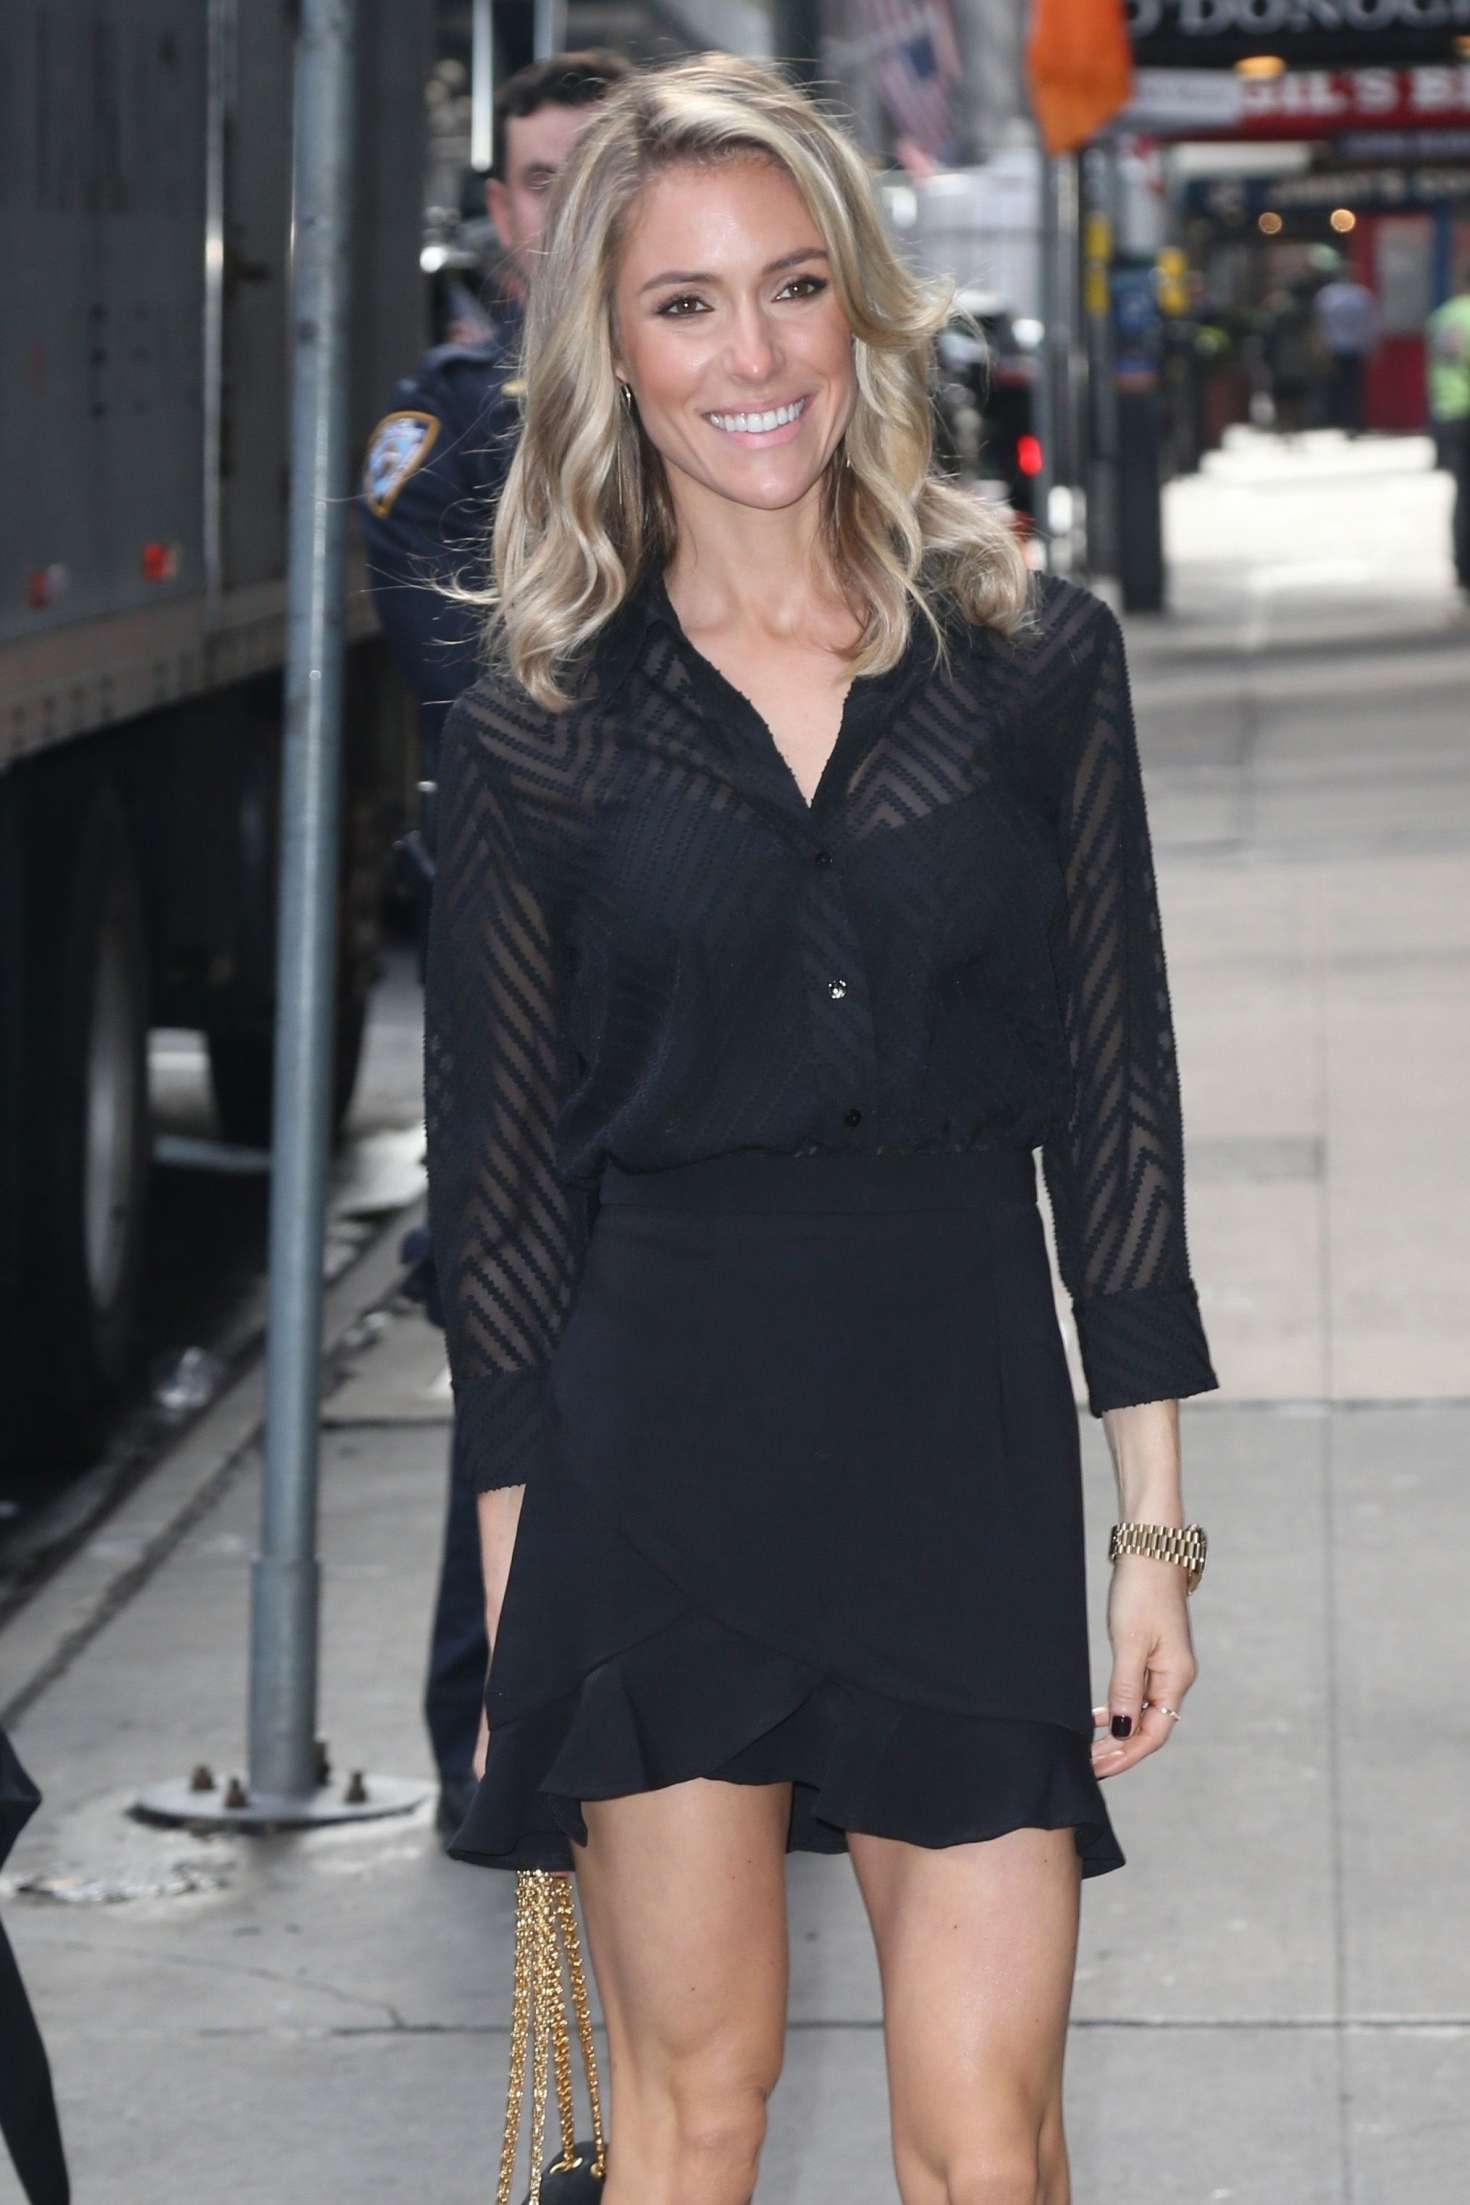 Kristin Cavallari 2019 : Kristin Cavallari: Heads to Good Morning America -09